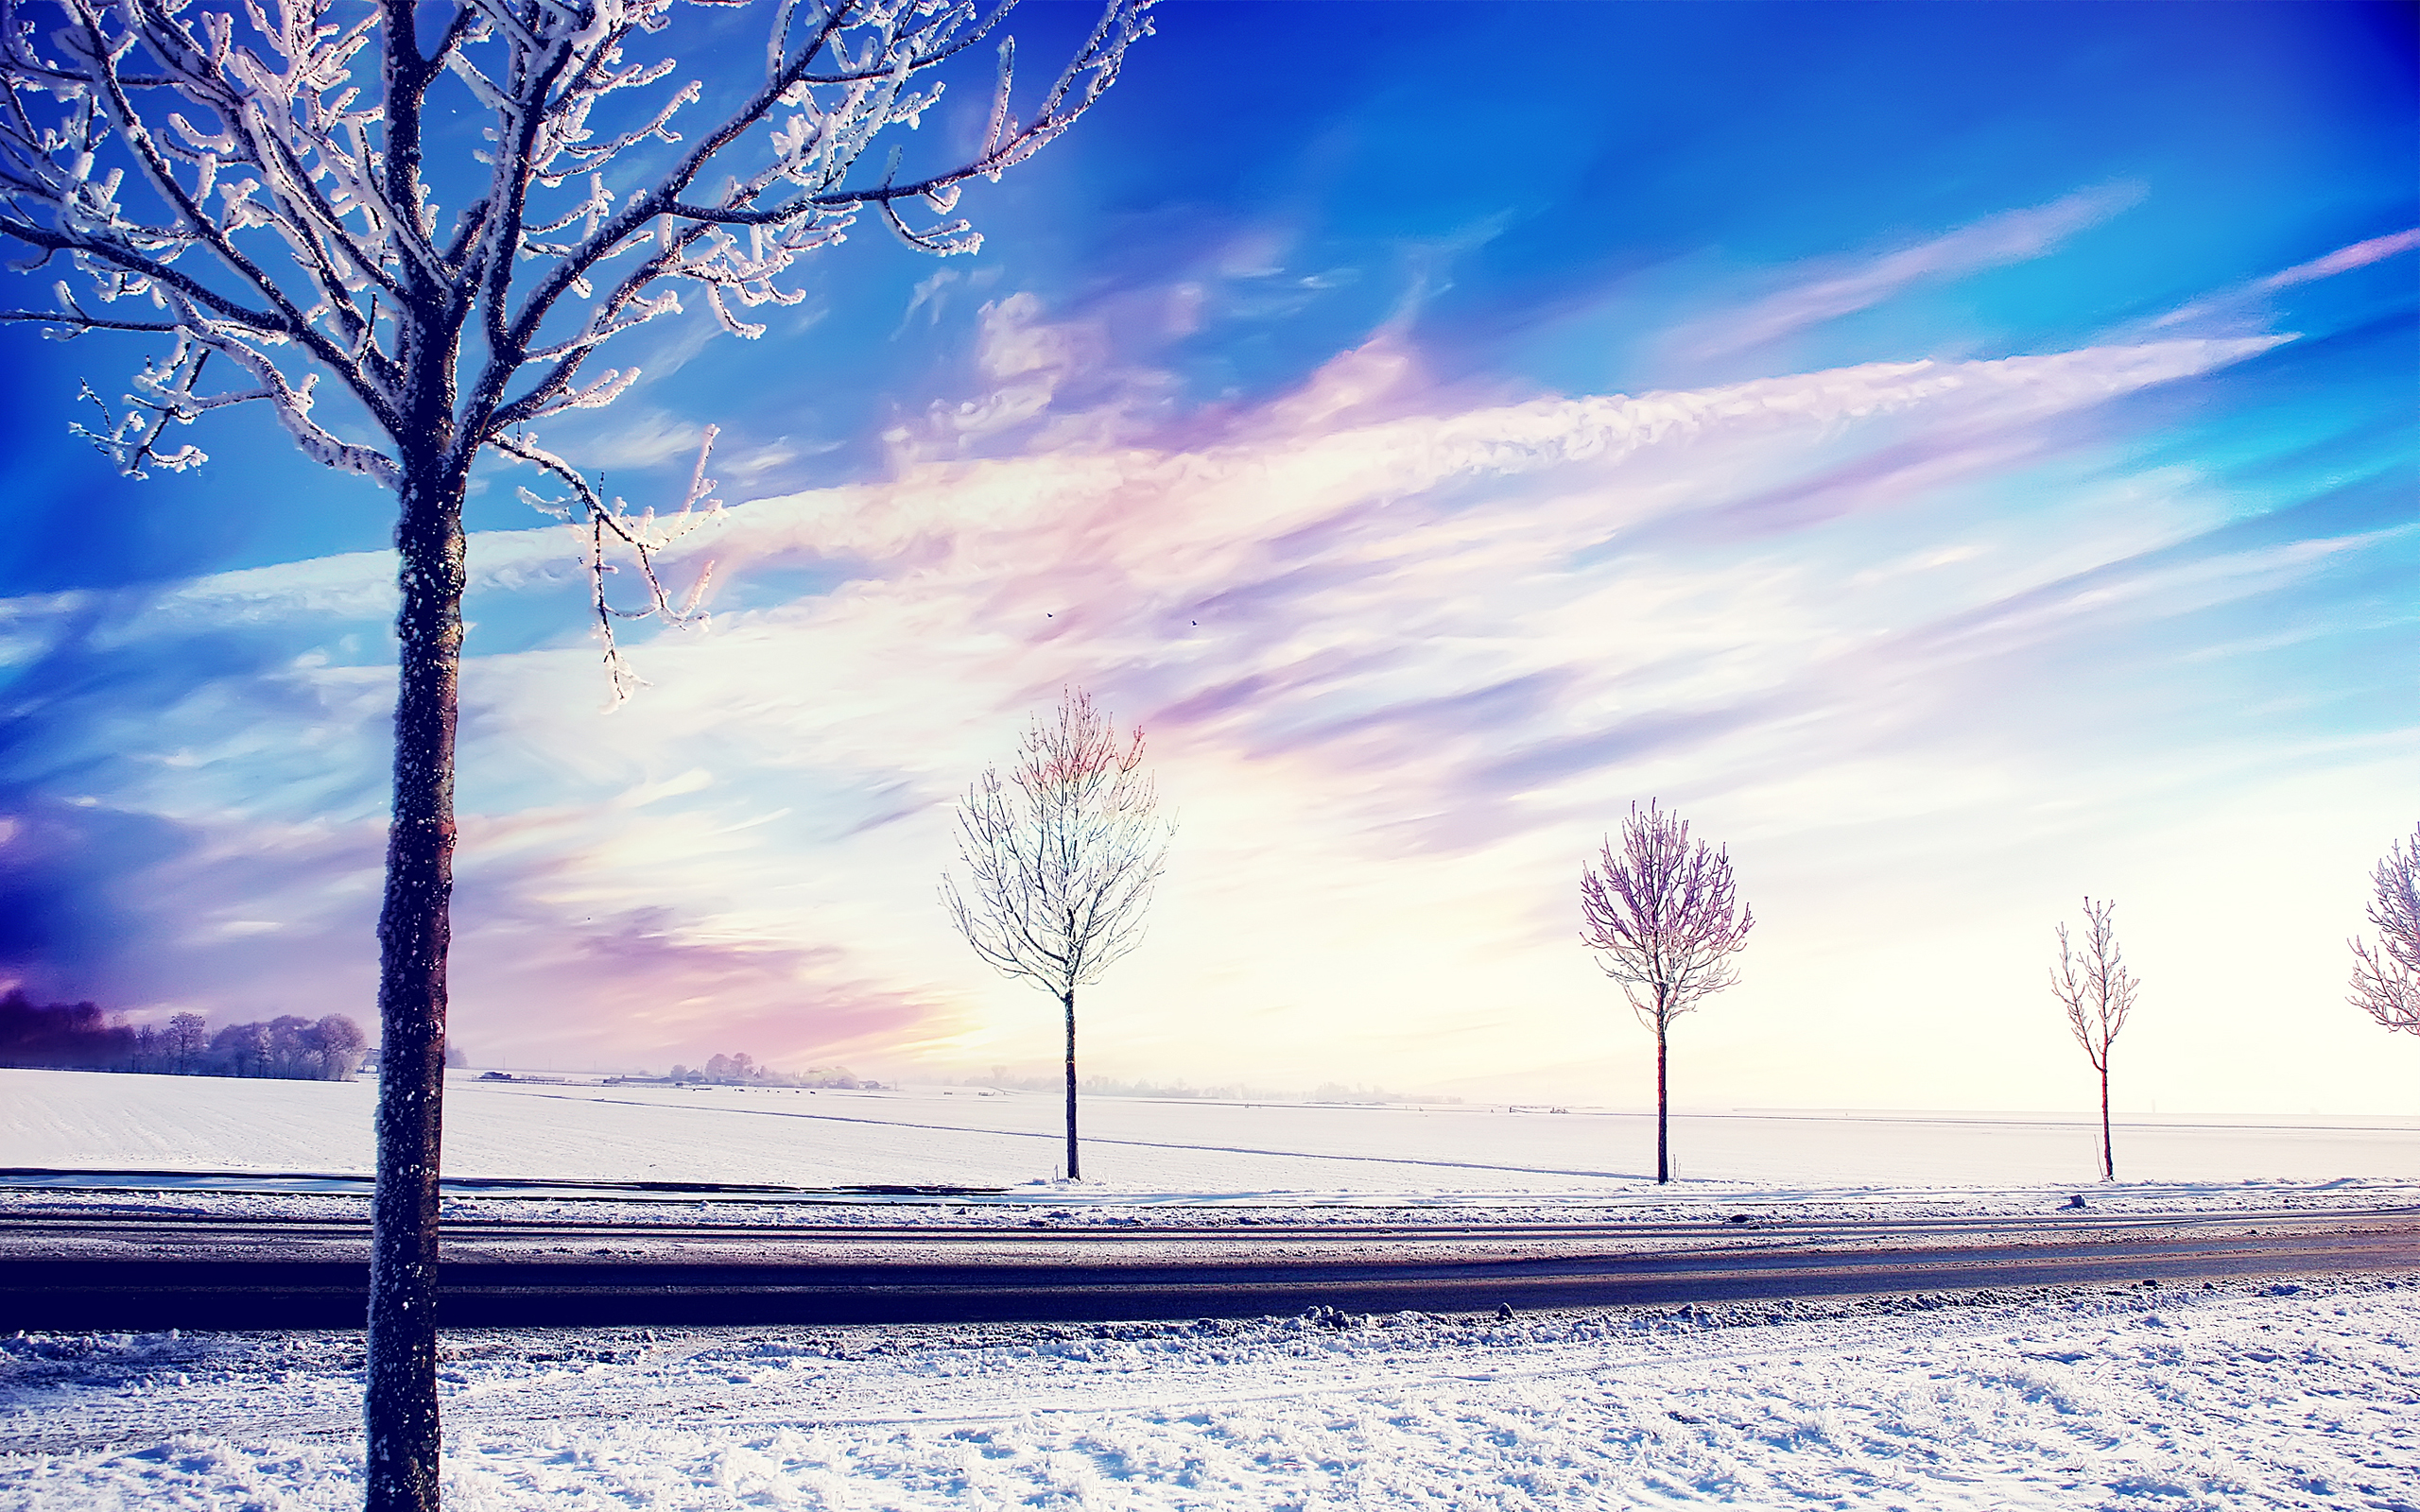 HD Wallpapers Snow Winter Trees